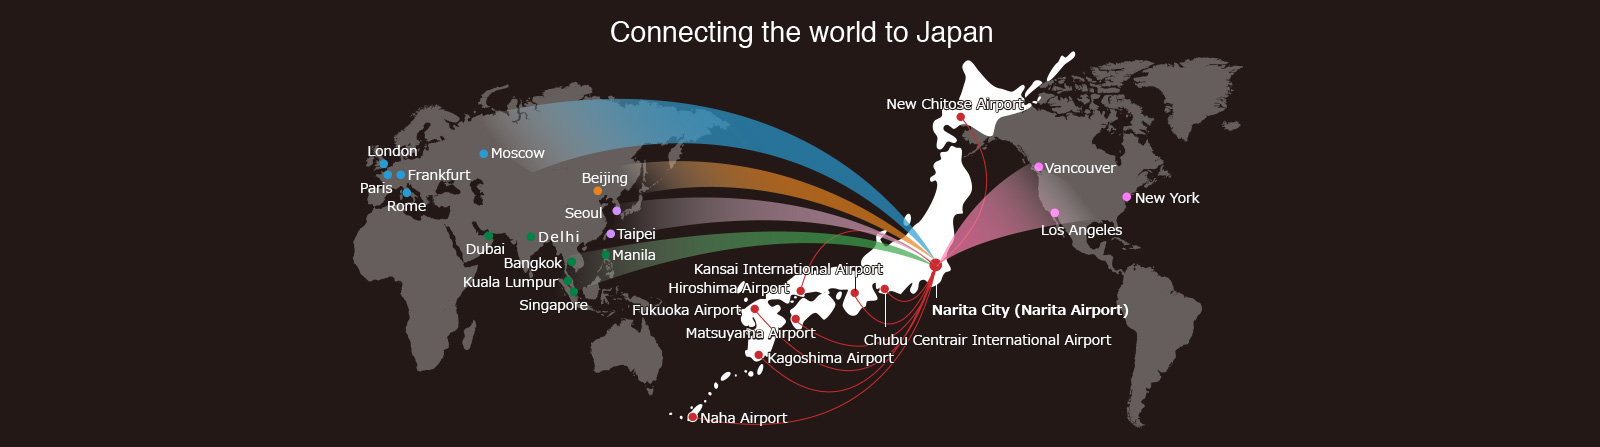 Connecting the world to Japan